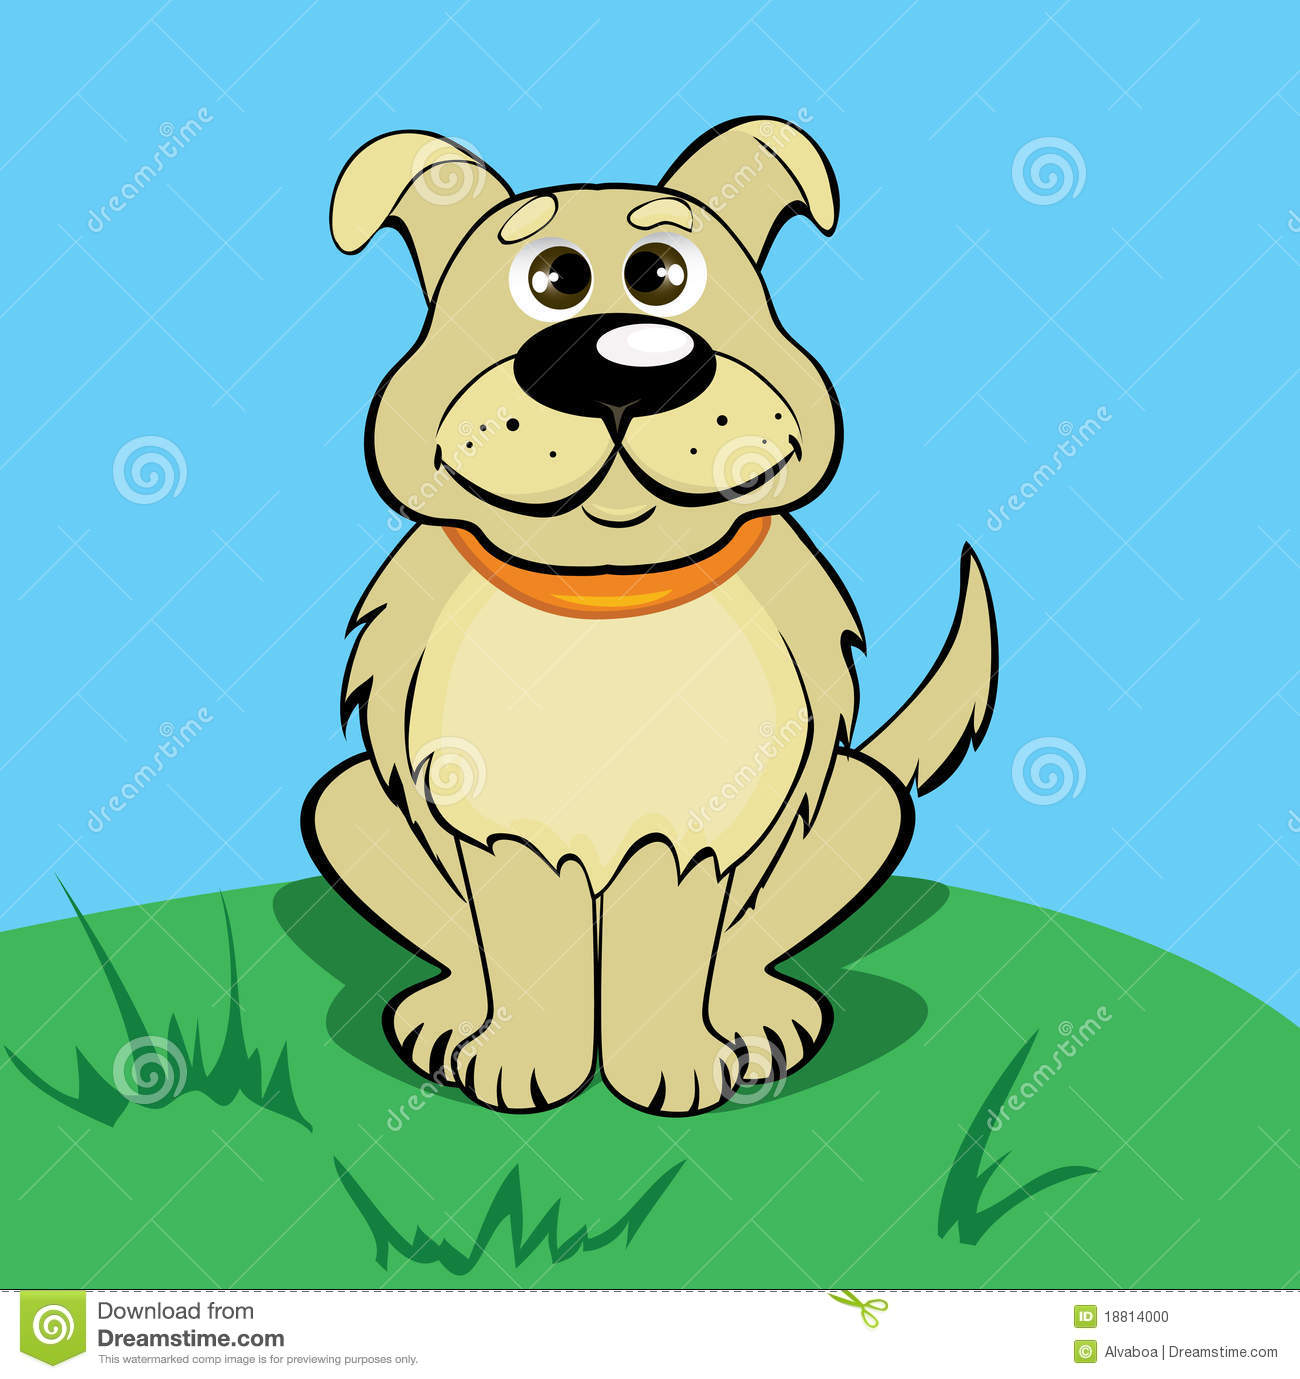 Nitrate Rich Diet Good Heart Health 49804 besides Gandia furthermore Pig Names furthermore Watch as well Cute Black Cat Digital Freebie. on old cartoon dogs